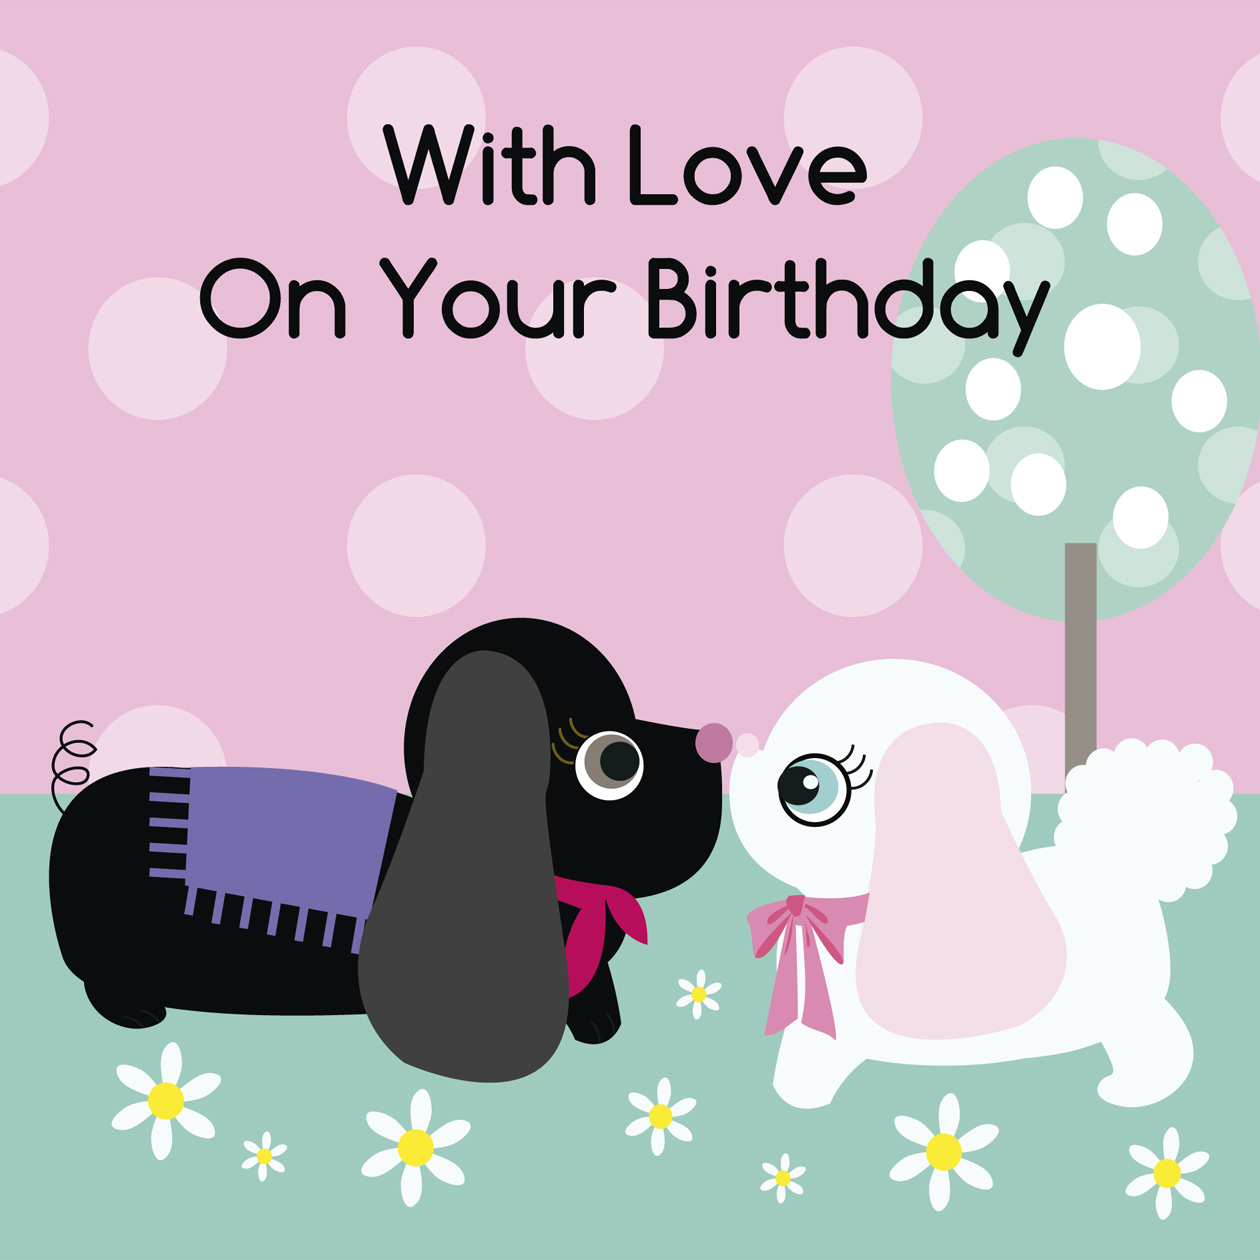 Greeting card greeting card uk birthday greeting cards kristyandbryce Choice Image